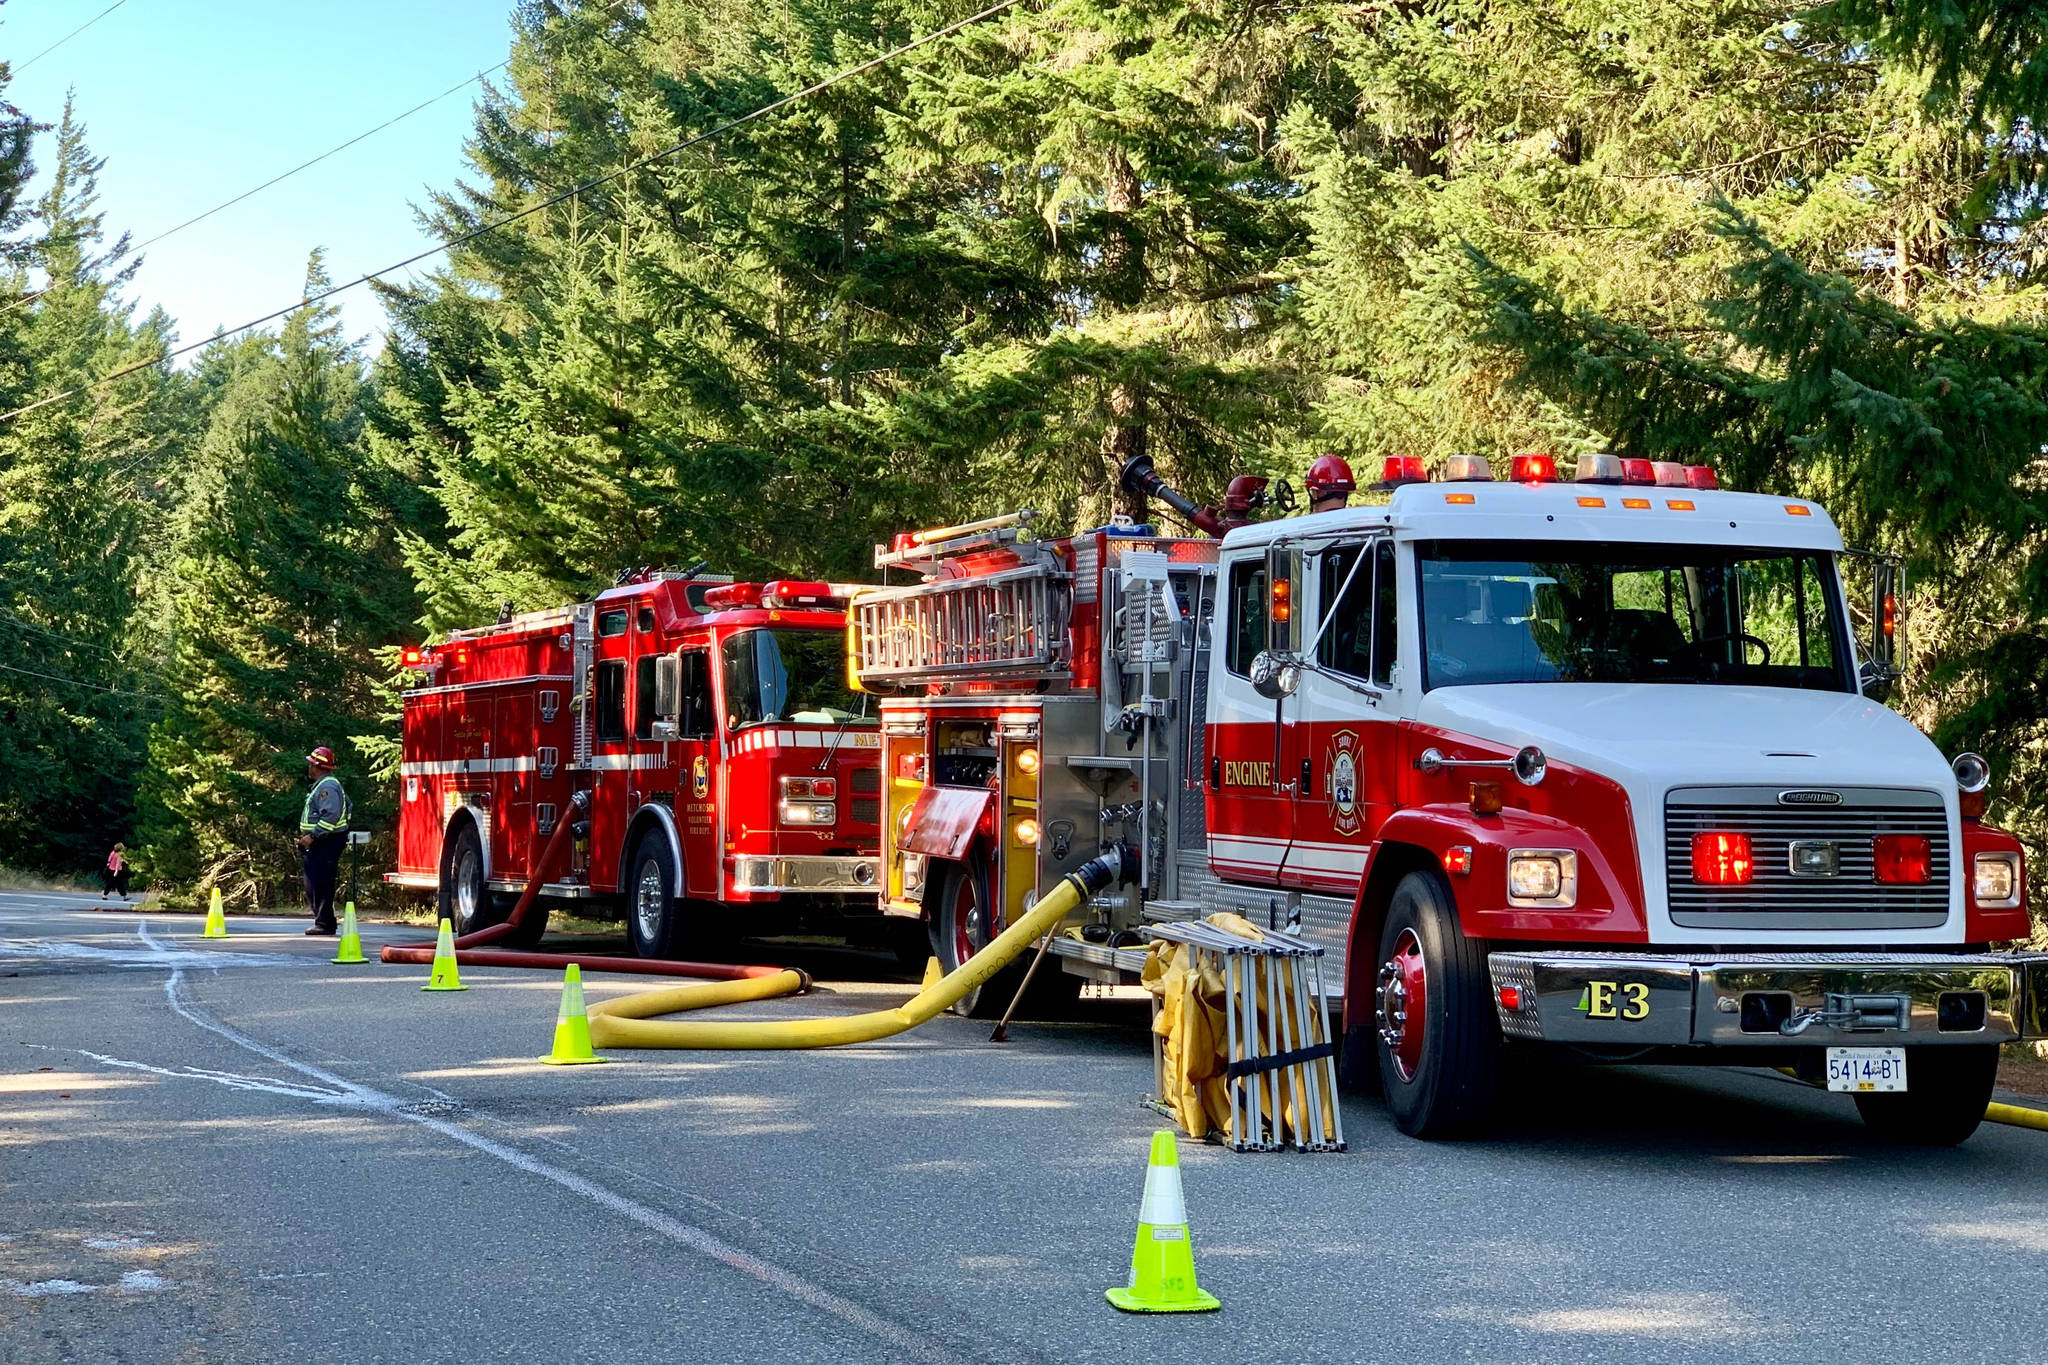 Self-igniting vegetation possible cause of East Sooke's wildfire